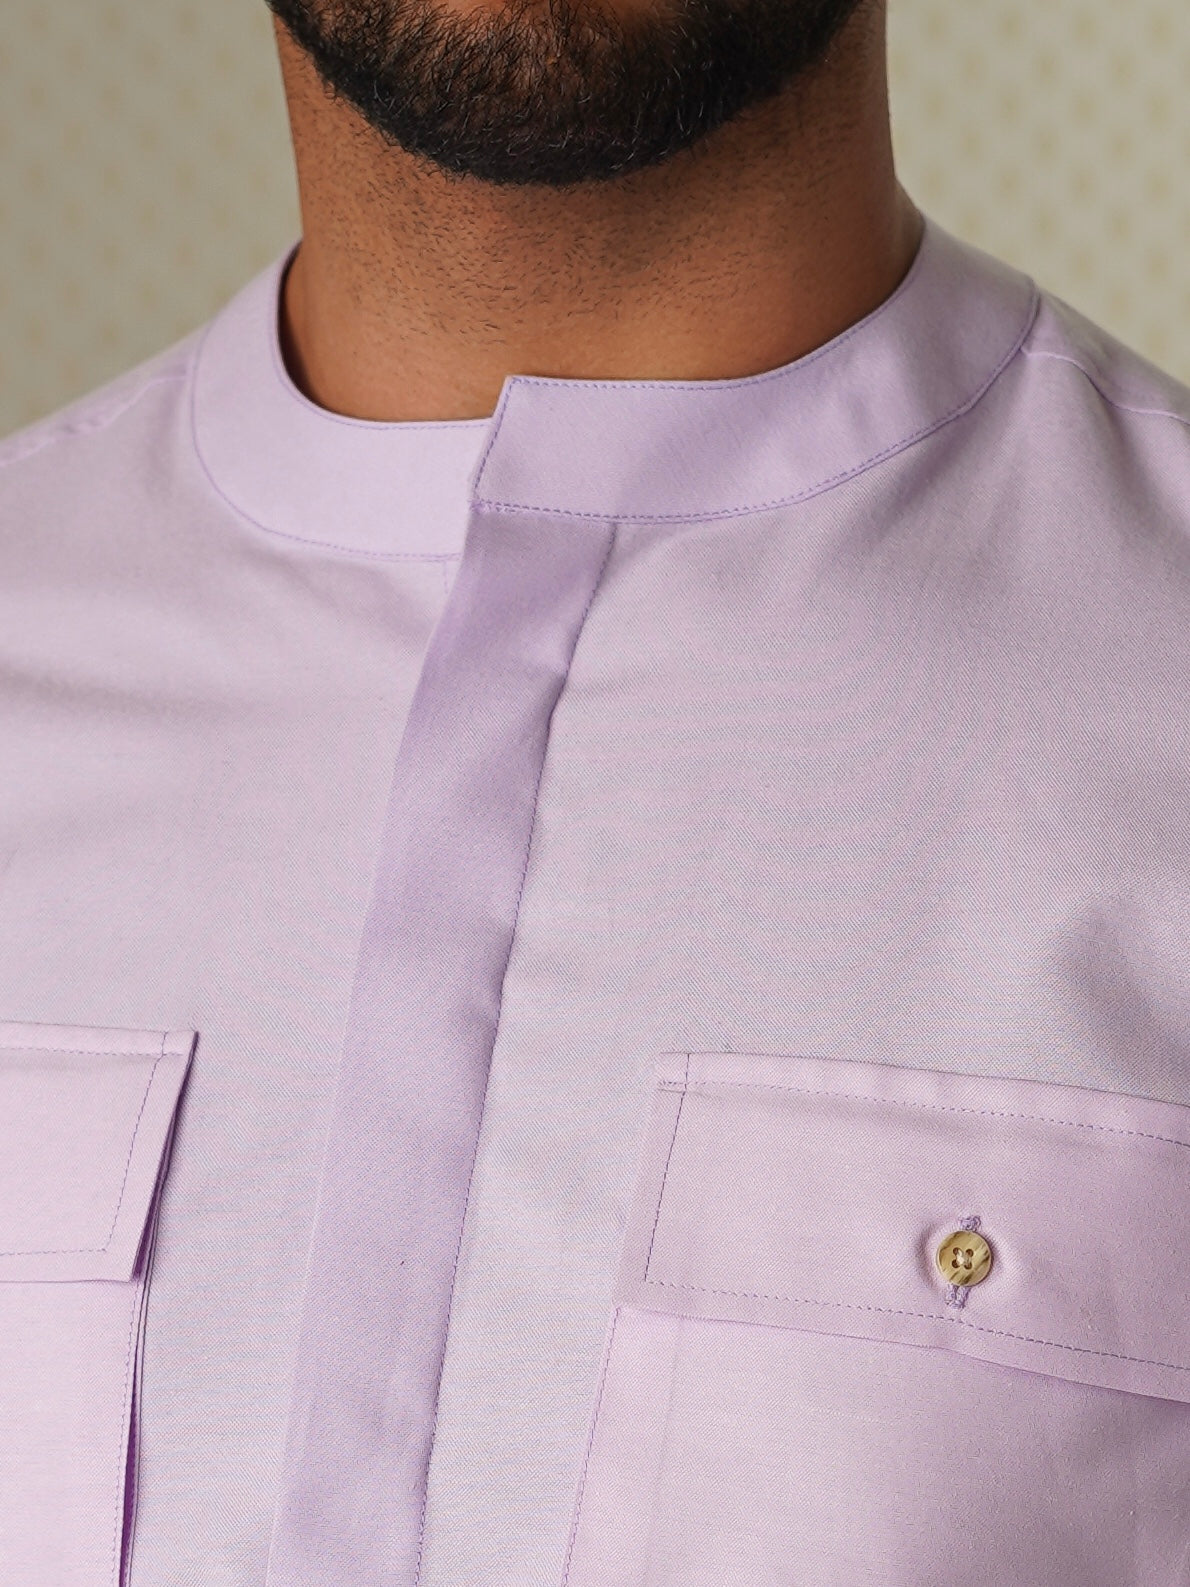 Double Pocket Civilian Shirt